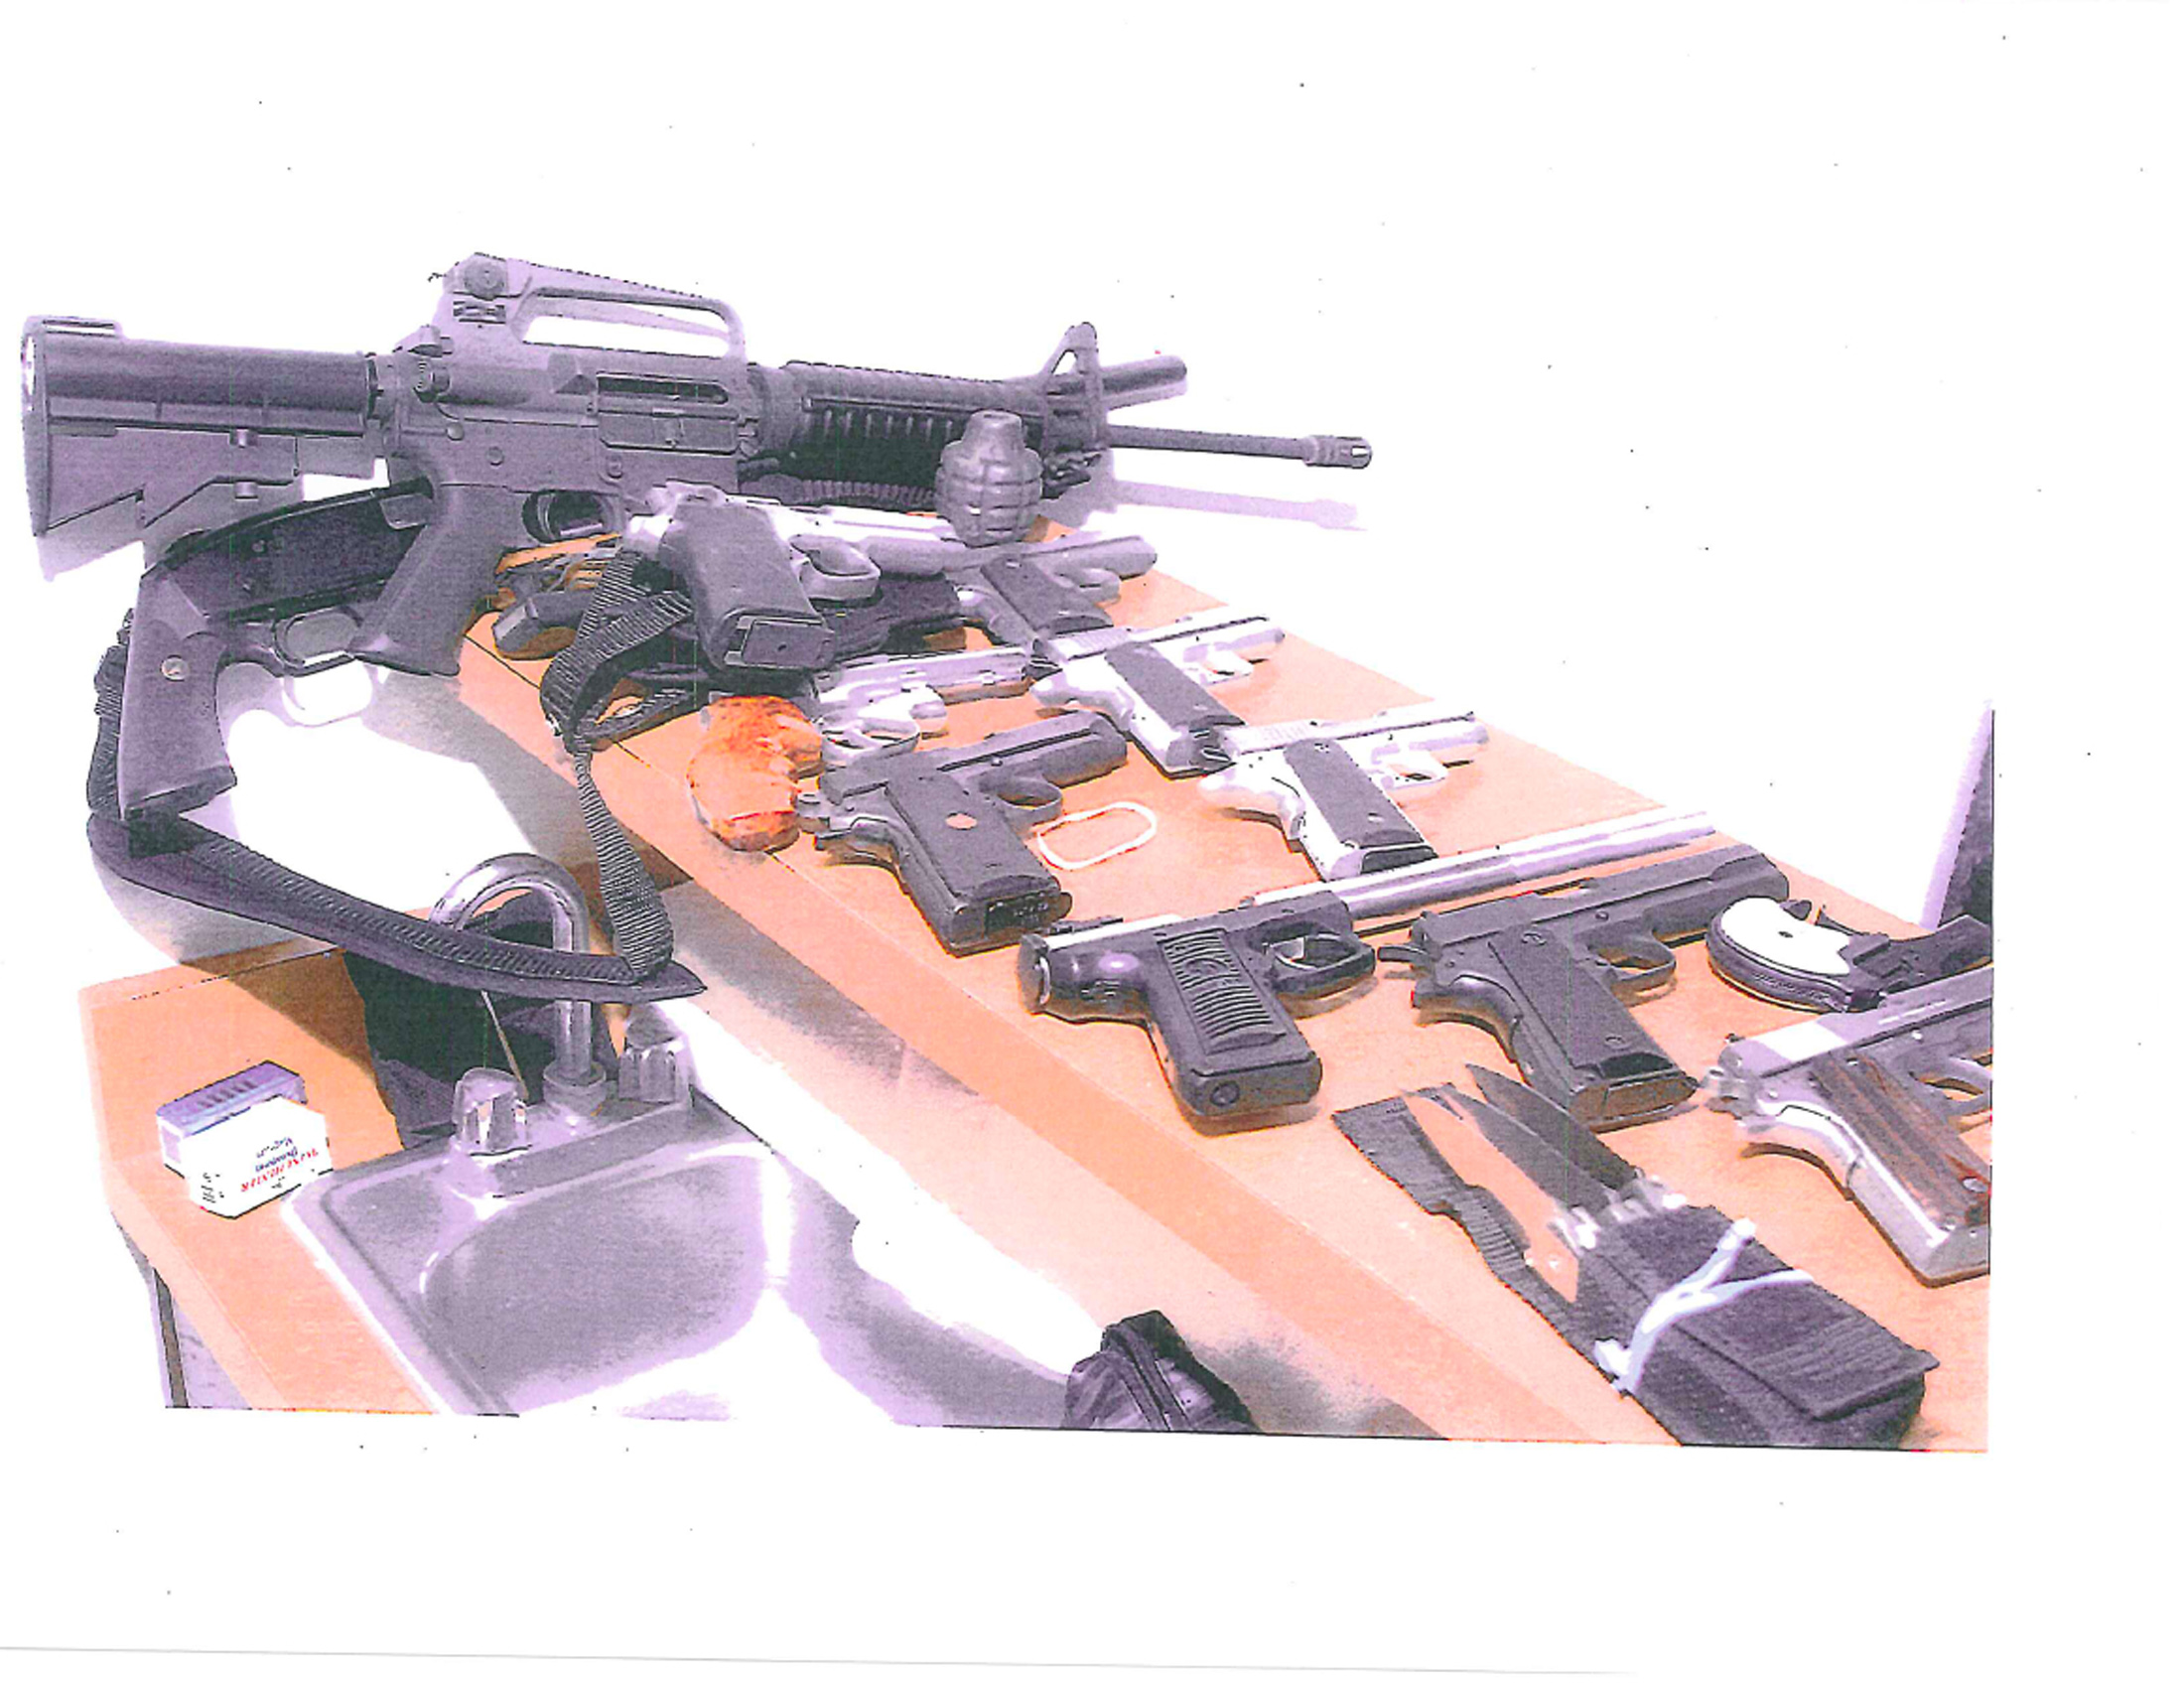 A handout photo by the U.S. Department of Justice released to Reuters on July 14, 2011 shows various weapons seized from Whitey Bulger's apartment in Santa Monica, California, following his arrest in June. A cache of weapons including a number of handguns, an assault rifle and a sawed-off shotgun, and bundles of cash were found during the search. Former crime boss Bulger entered a plea of not guilty in his arraignment on July 6, 2011 on federal racketeering charges, including 19 alleged murders from the 1970s and 1980s. REUTERS/U.S. Department of Justice/Handout